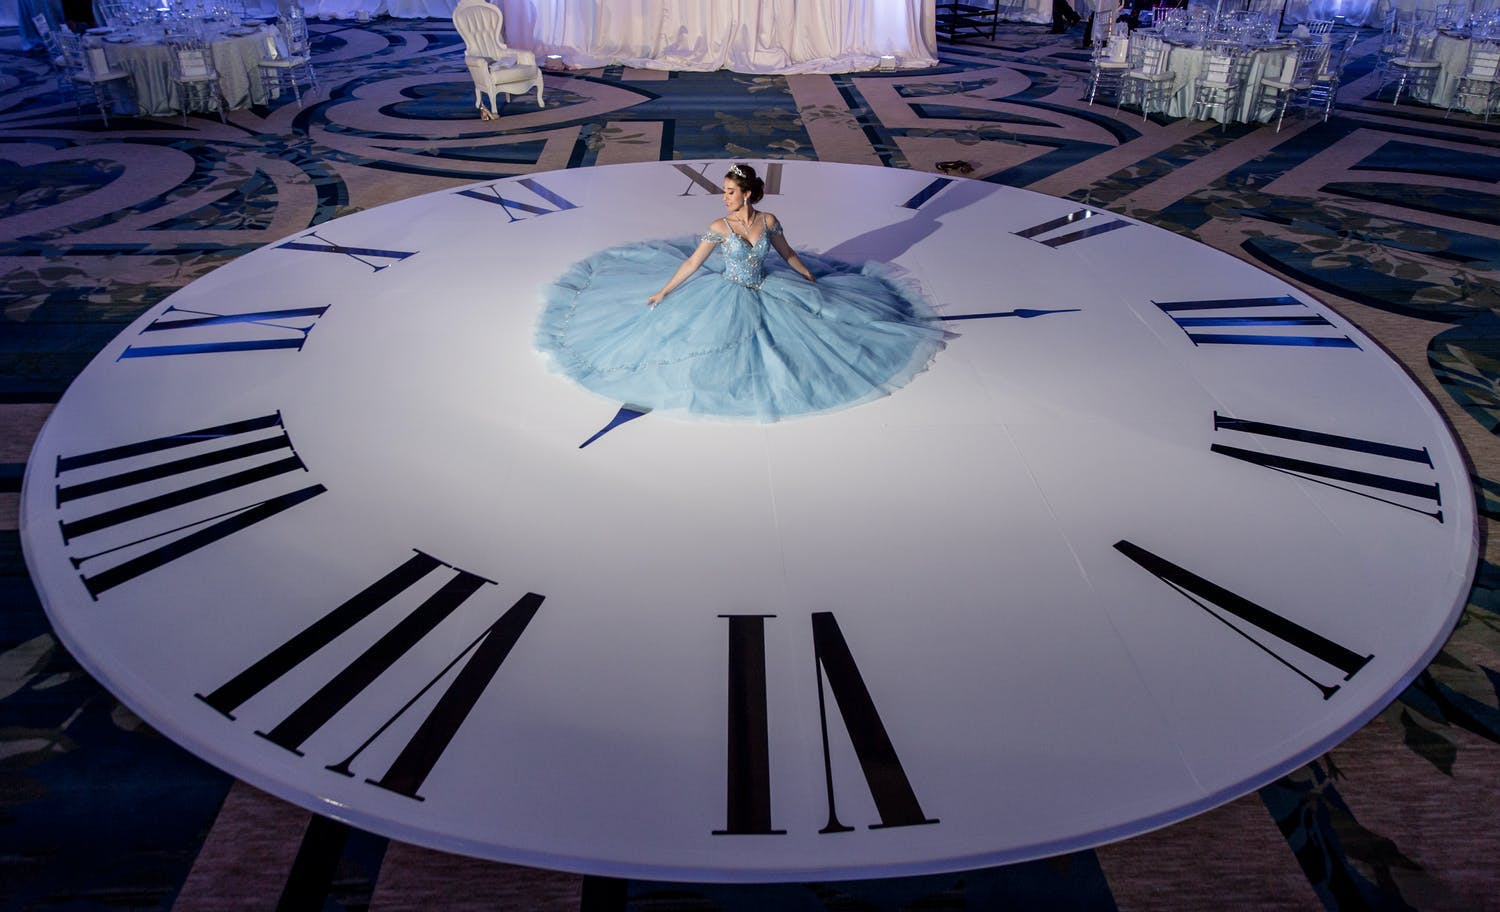 Quinceañera sits in blue ball gown on clock-shaped dance floor | PartySlate